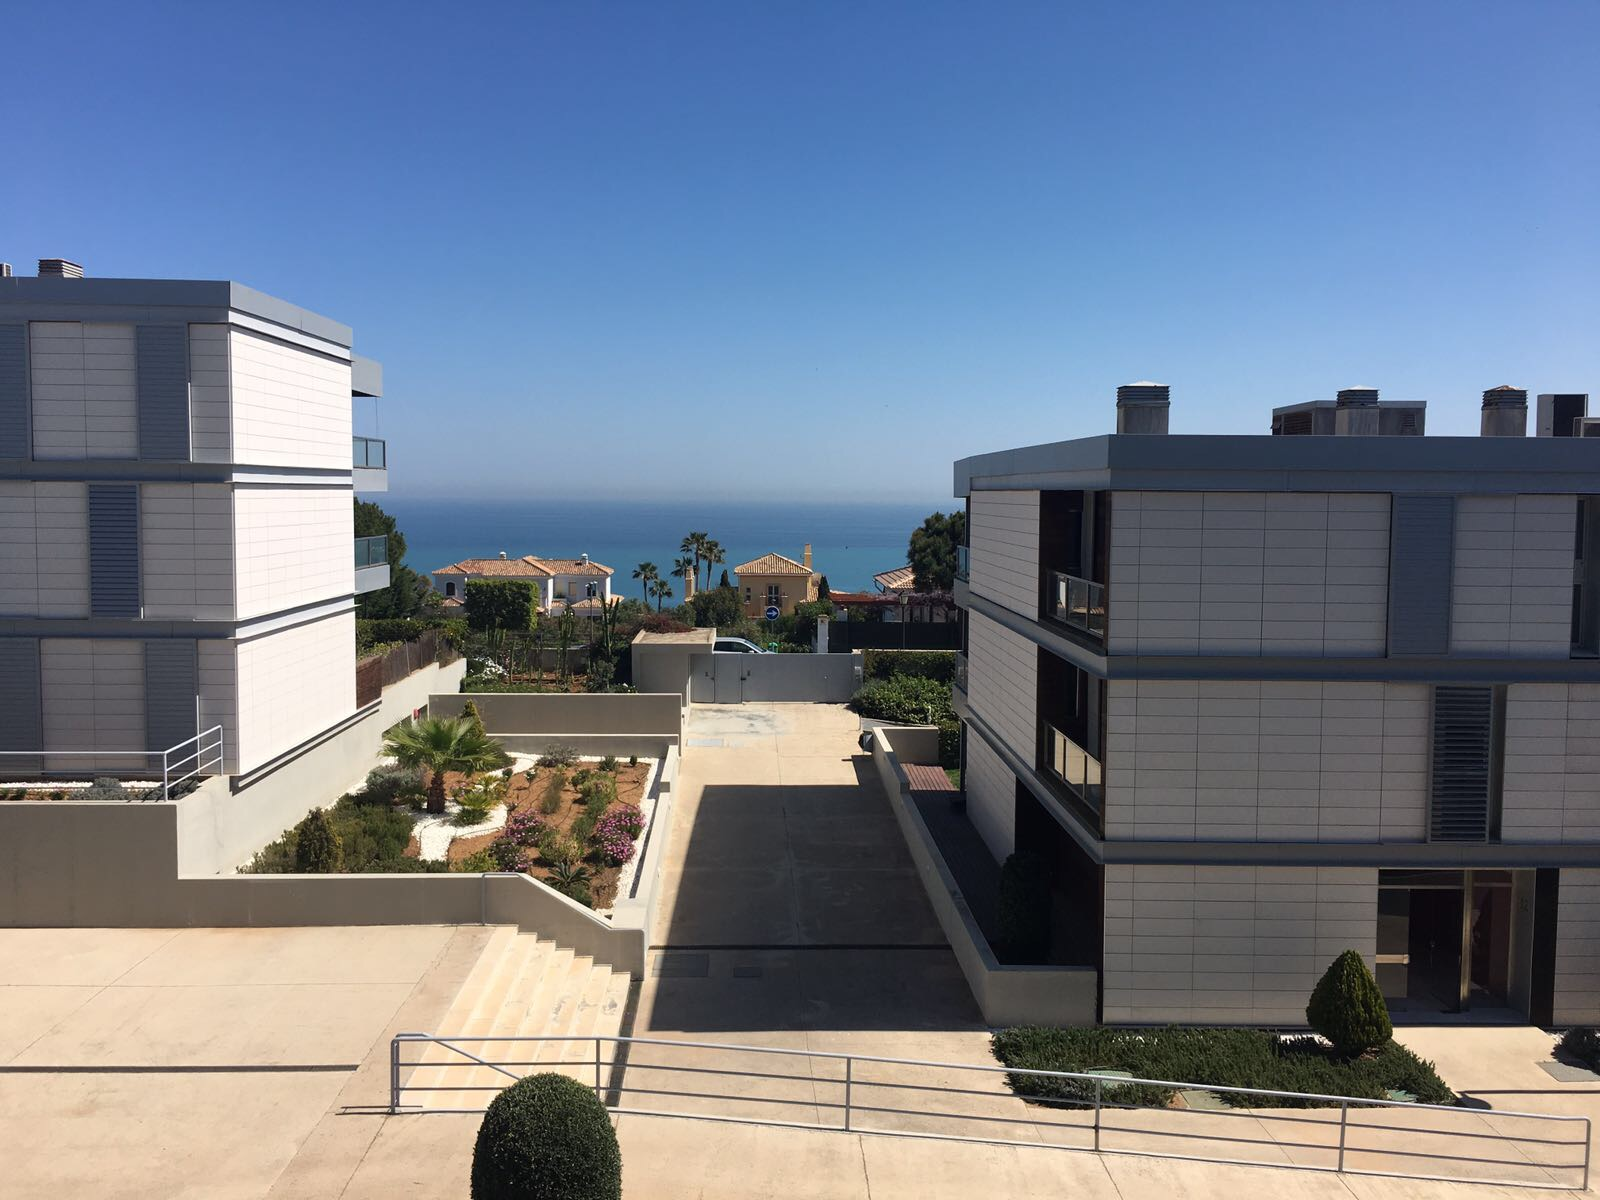 3 bedroom apartment in Punta Paloma Manilva with sea views and indoor pool